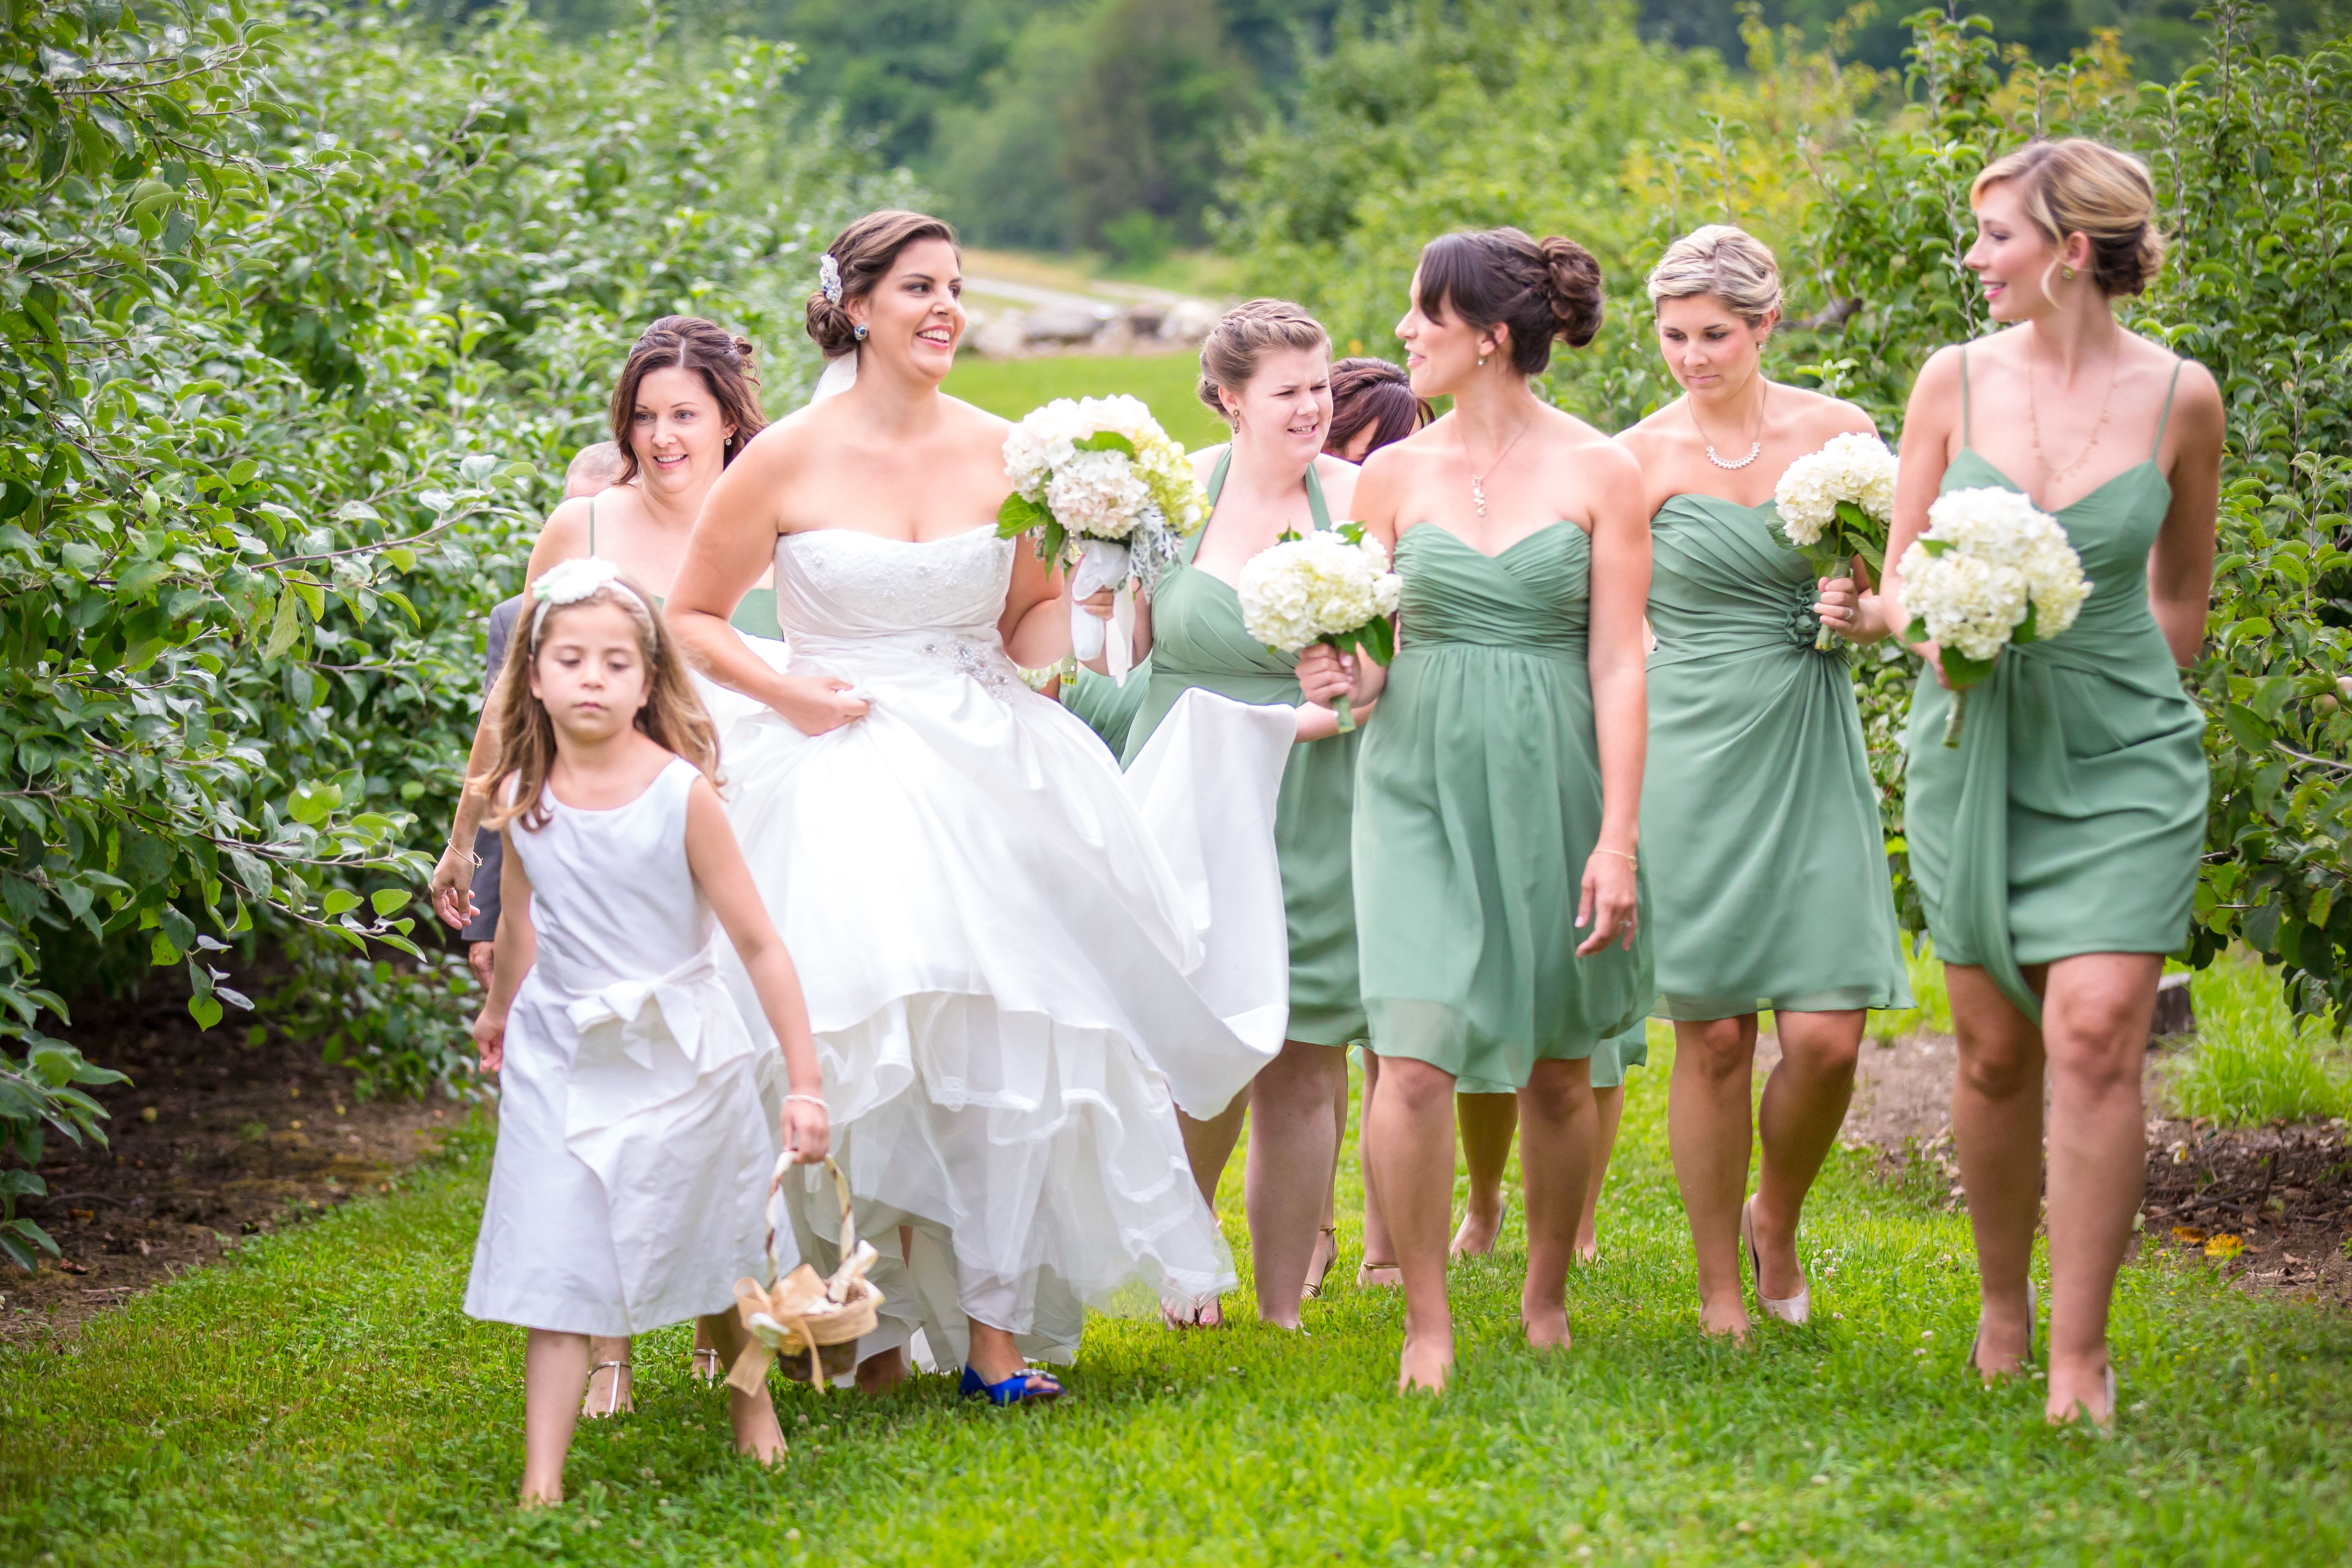 Sage bridesmaid dress image collections braidsmaid dress sage green alfred angelo bridesmaid dresses bridesmaid dresses sage green alfred angelo bridesmaid dresses ombrellifo image ombrellifo Gallery